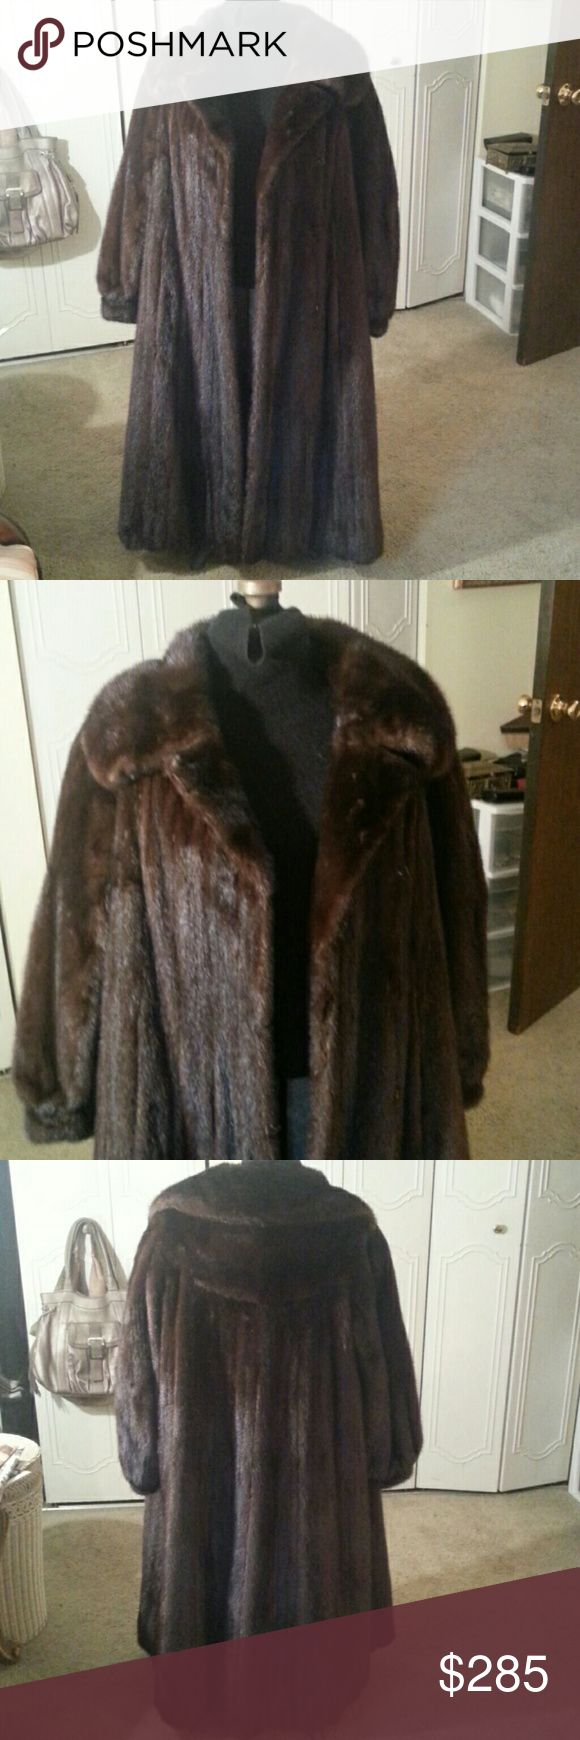 MINK REAL FUR  ANKLE LENGTH VINTAGE COAT MINK REAL FUR  ANKLE LENGTH VINTAGE COAT BEAUTIFUL FUR SIZE 8-10 MEDIUM FUR IS LUXURIOUS LINING IS EMBROIDERED ON BOTTOM THERE IS A MONOGRAM ON LINING WHICH IS A BROWN COLOR THERE ARE HOOK AND EYE CLOSURE WHICH MAY NEED TO BE REPLACED THERE WAS A BELT BUT AM UNABLE TO LOCATE IT I USED IT WITHOUT THE BELT IT IS IN GOOD CONDITION NO TEARS THAT I CAN FIND AND NO ODOR THIS IS A BEAUTIFUL COAT FOR VINTAGE AT A GREAT PRICE MINK ANKLE LENGTH Jackets & Coats